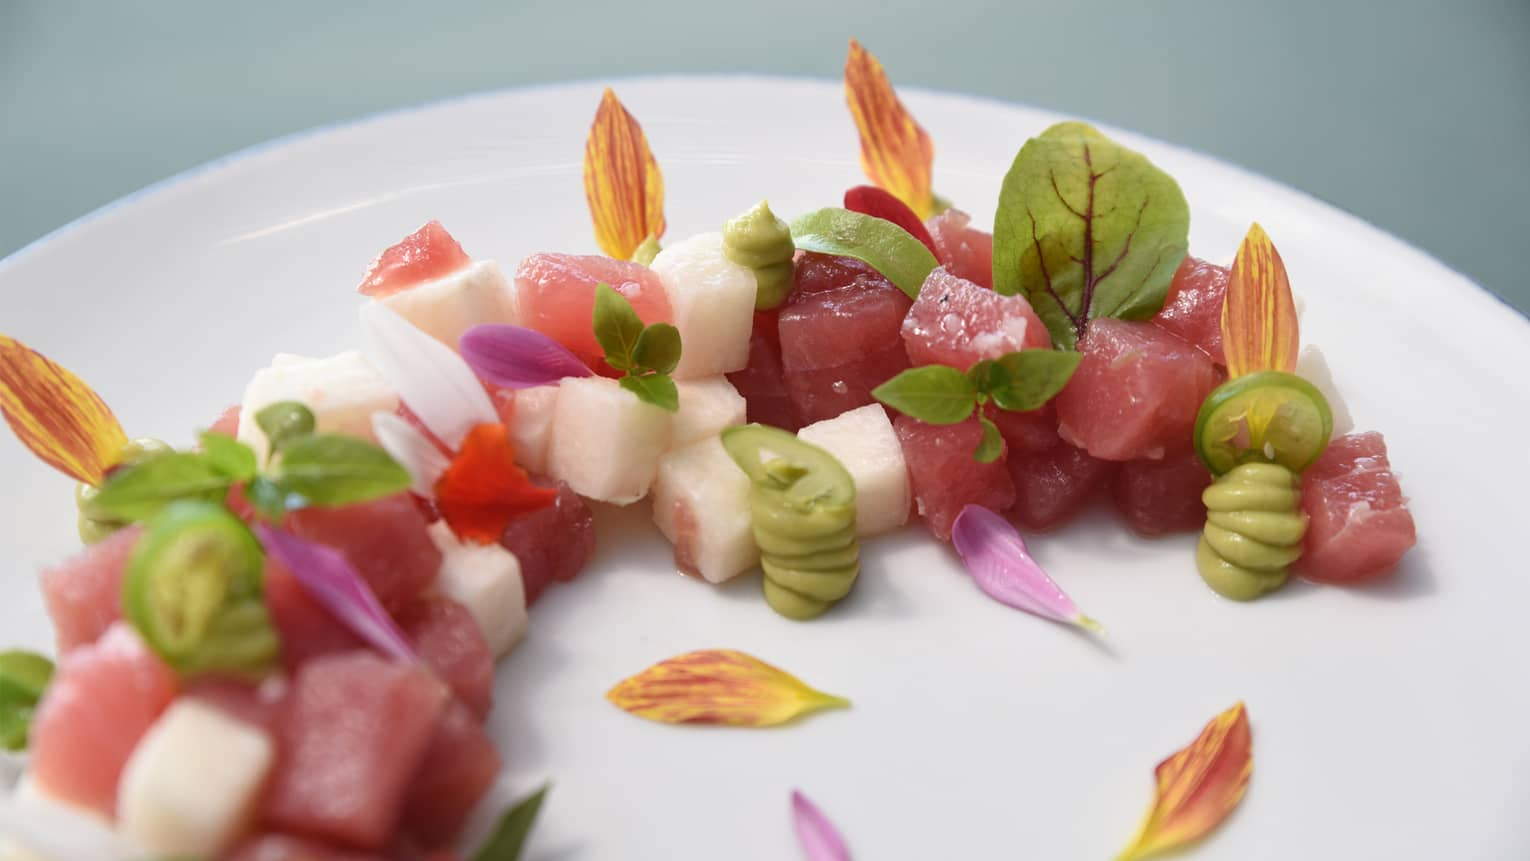 Diced local tuna garnished with jicama, avocado, edible flower petals